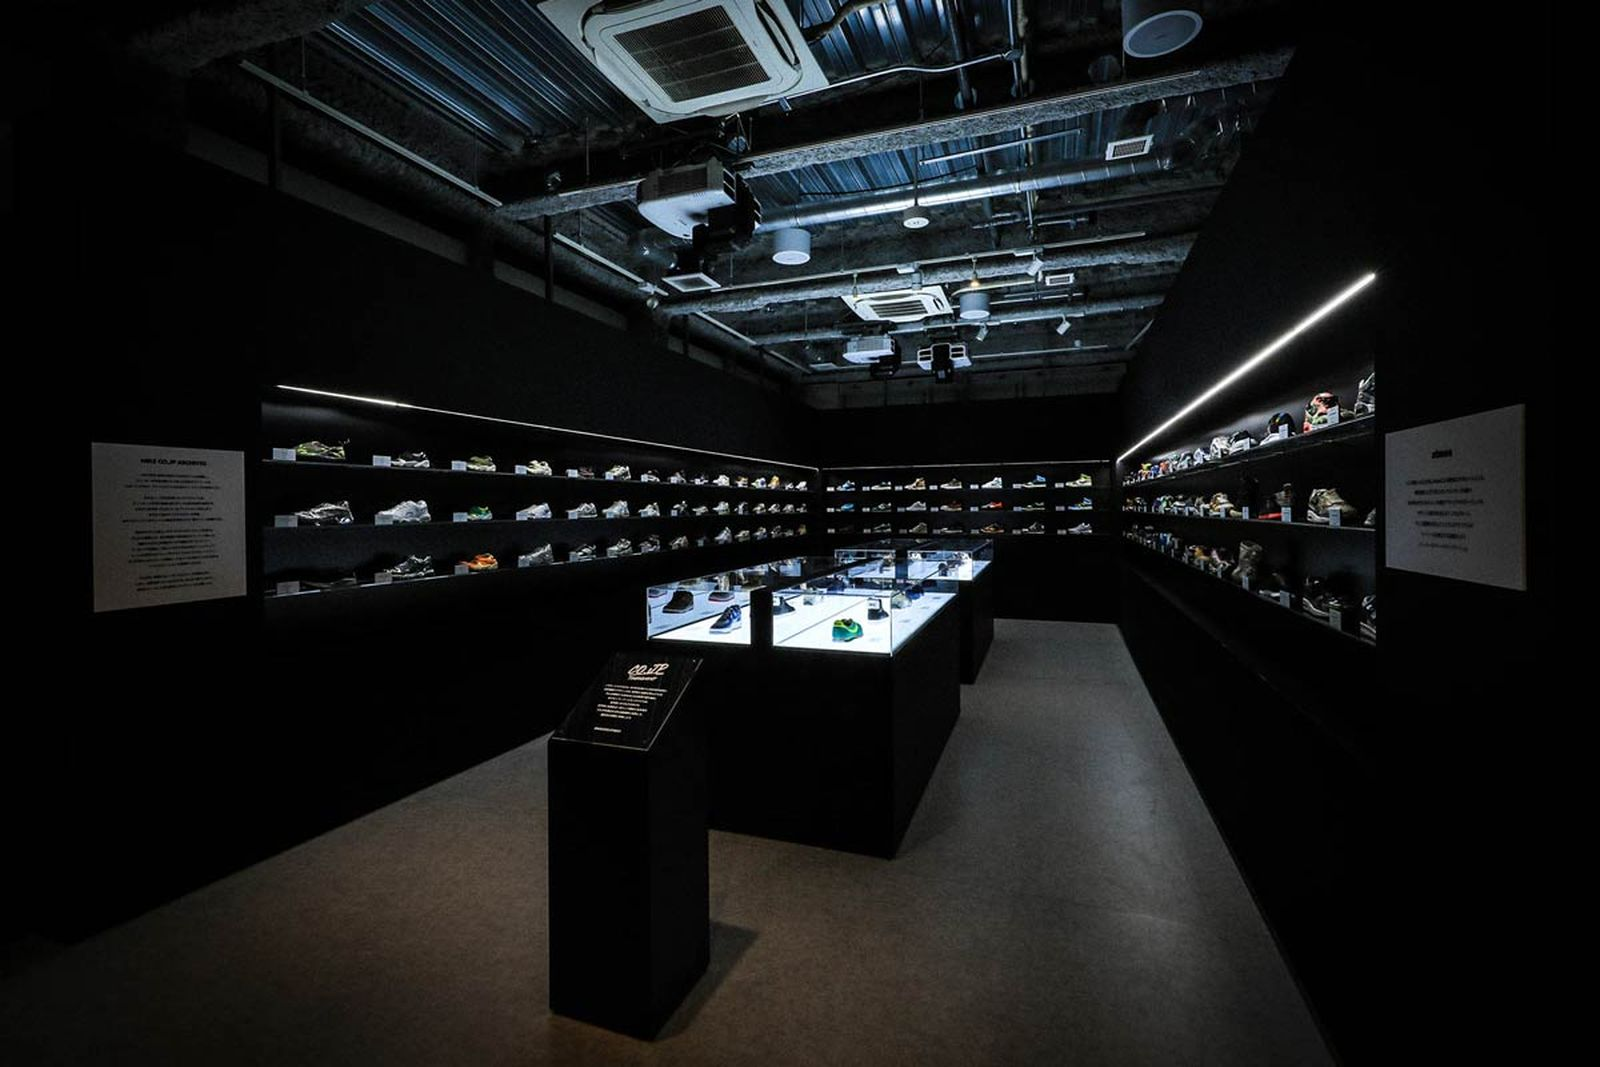 atmos-nike-co-jp-archives- (4)